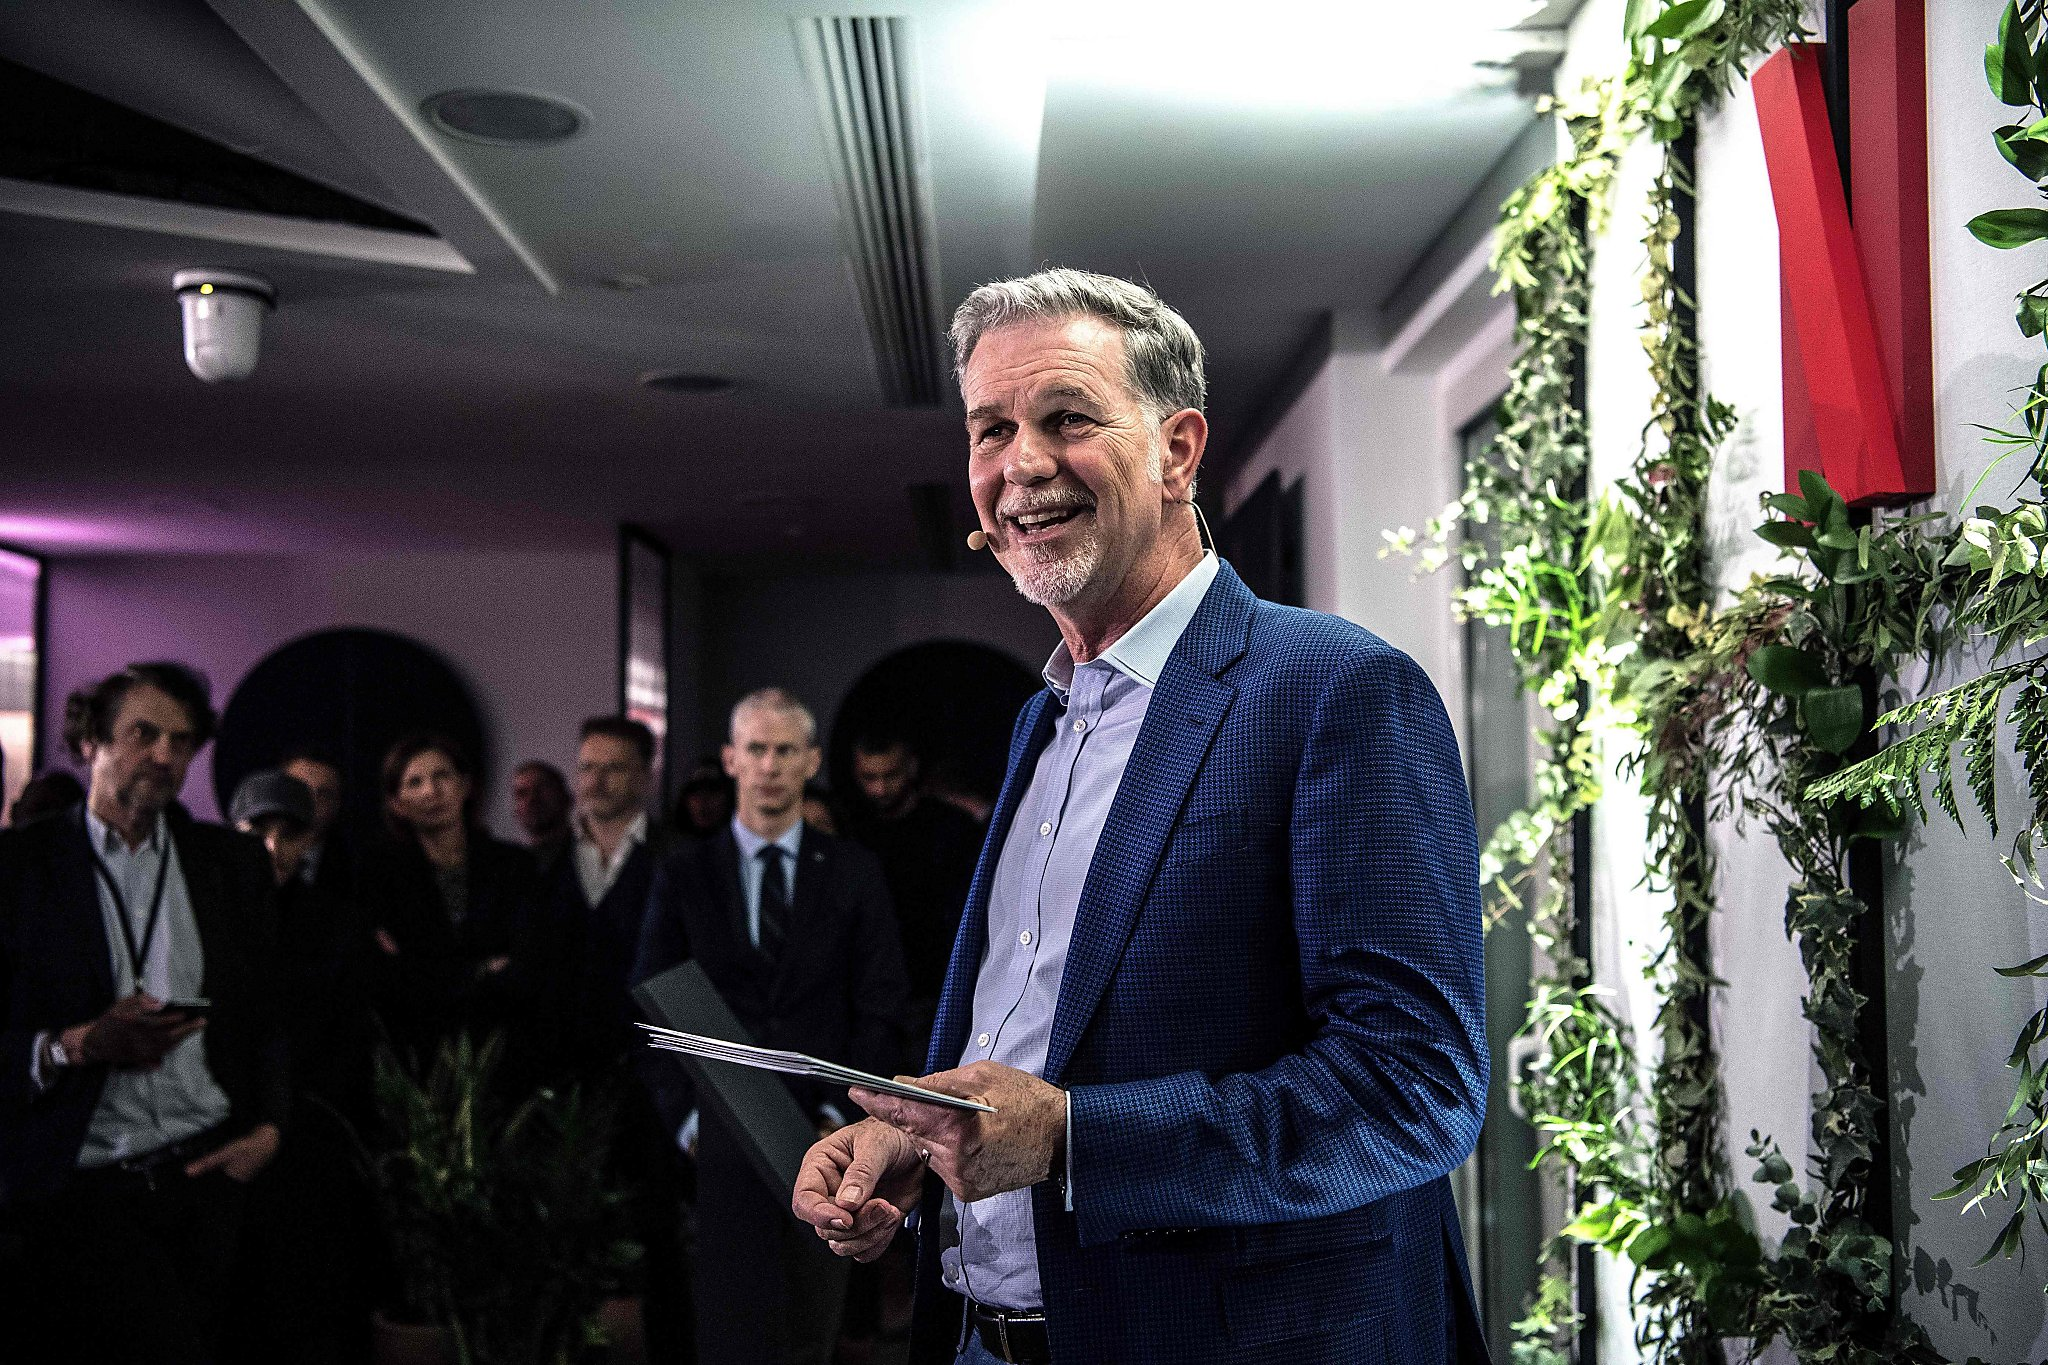 Netflix holds its own amid growing competition